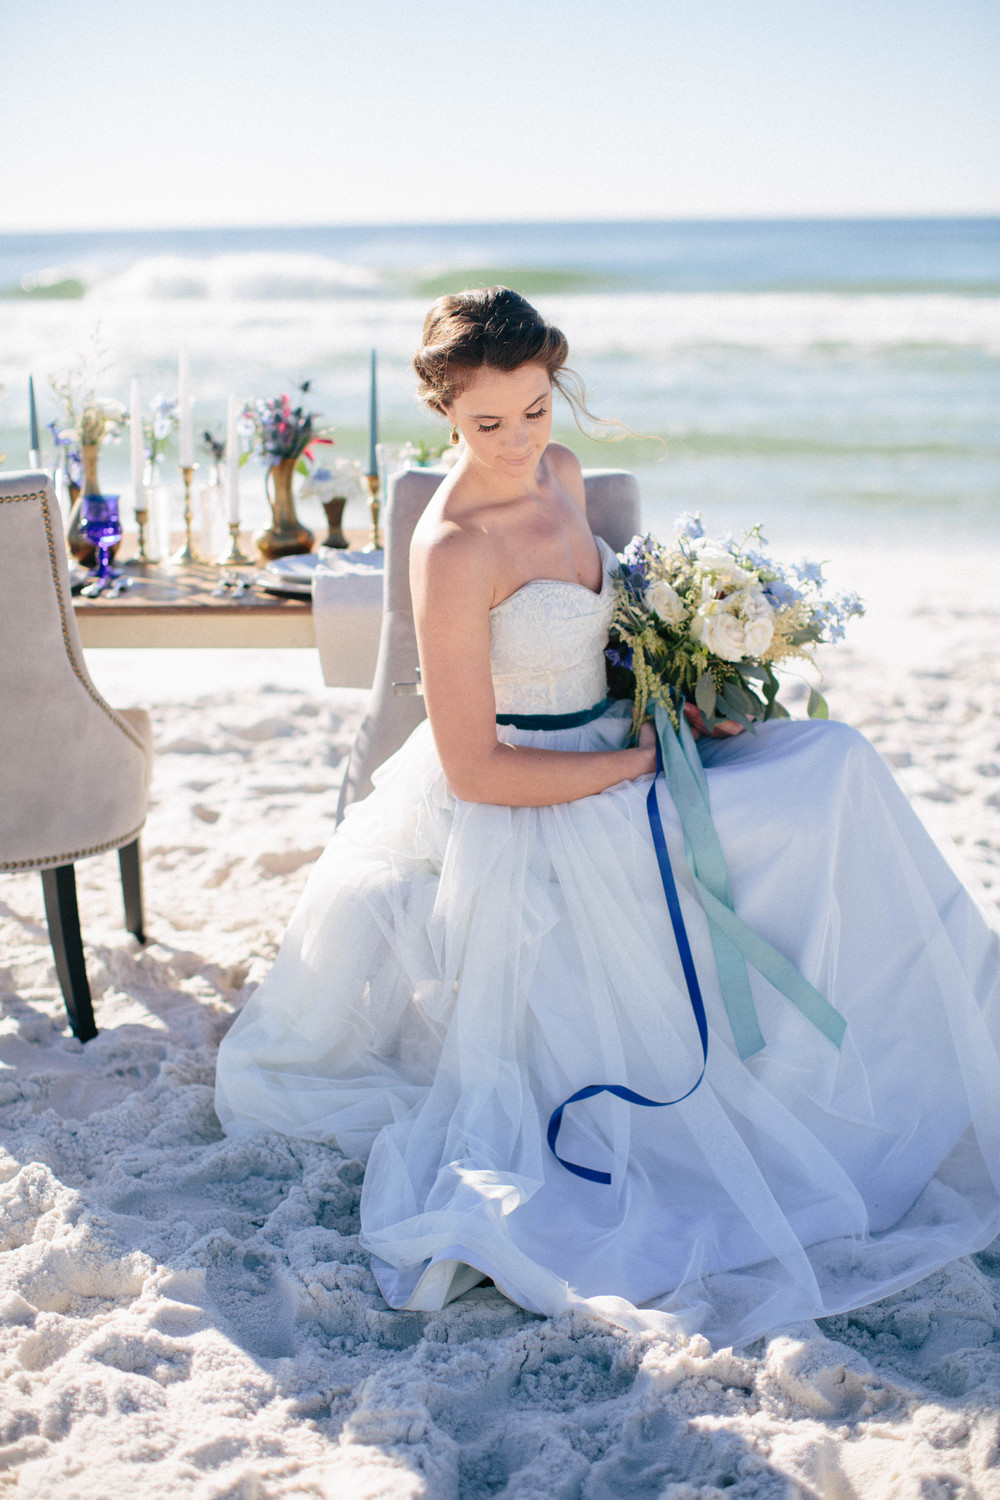 Ais-Portraits-ivey-weddings-and-events-ivory-and-beau-bridal-boutique-sunrise-wedding-sunrise-bridal-session-blue-dress-rebecca-schoneveld-wedding-dress-blue-velvet-wedding-beach-wedding-savannah-bridal-boutique-savannah-wedding-23.jpg